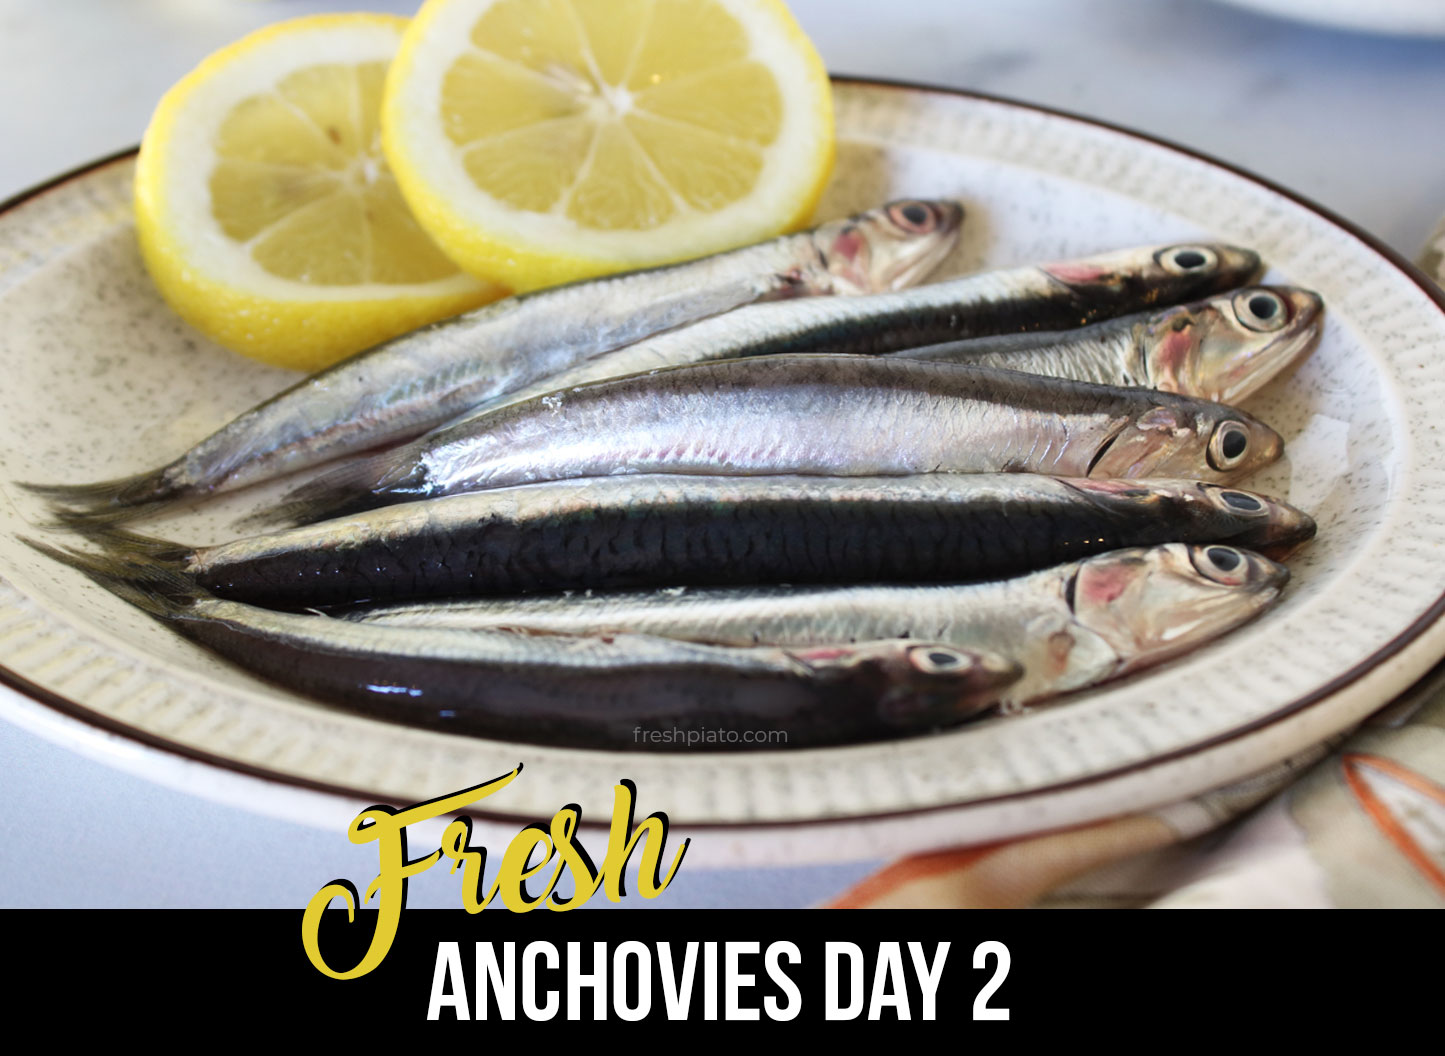 How to identify fresh anchovy day2